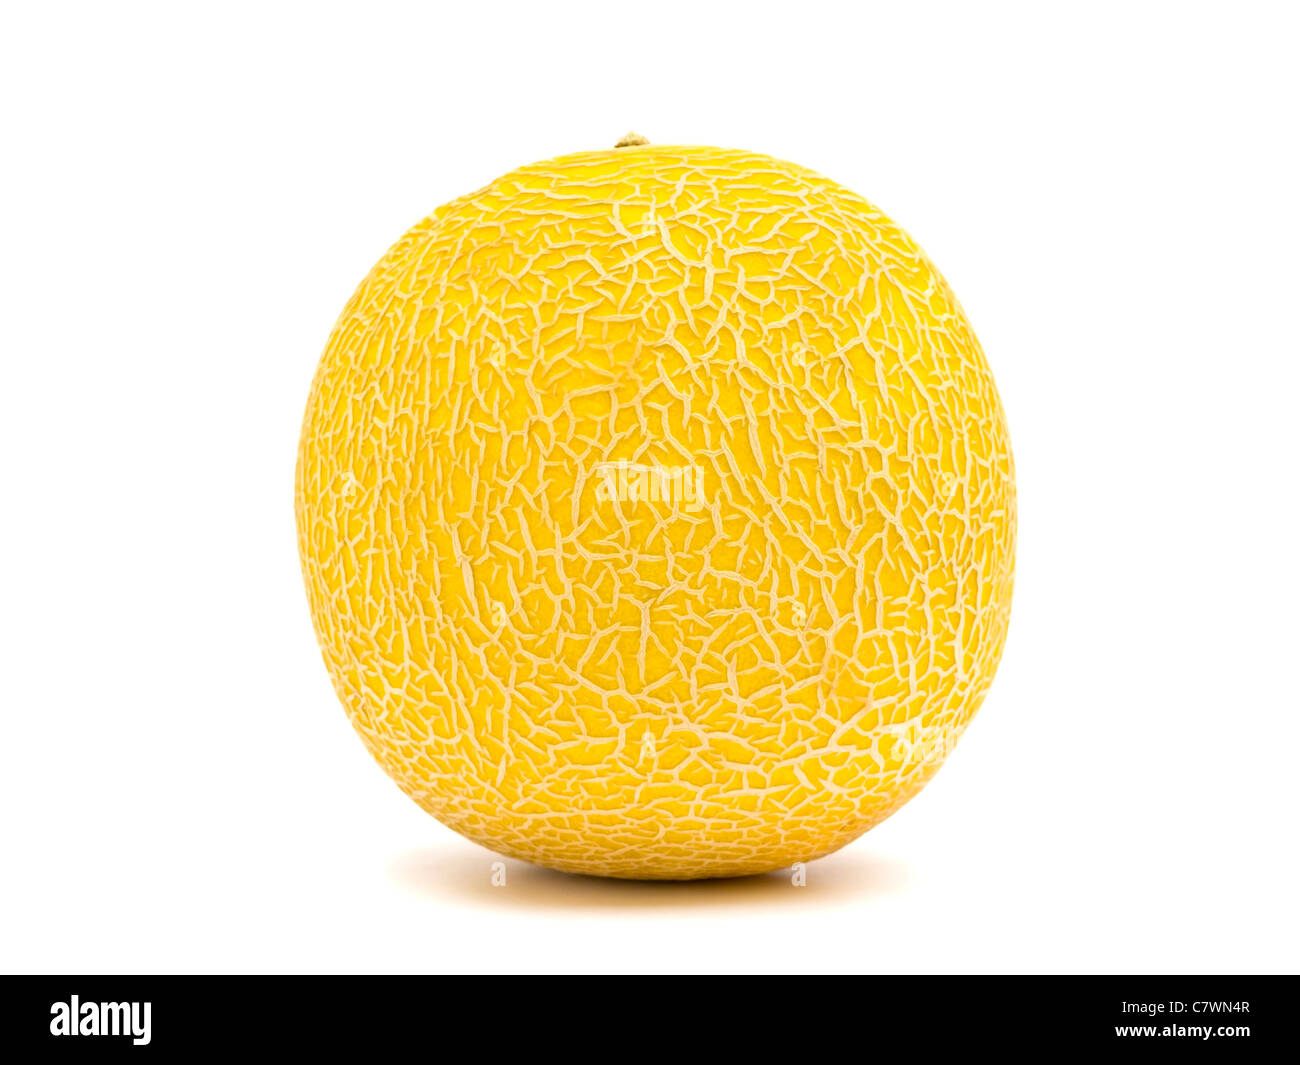 Melon cantaloup jusqu'Fermer Photo Stock